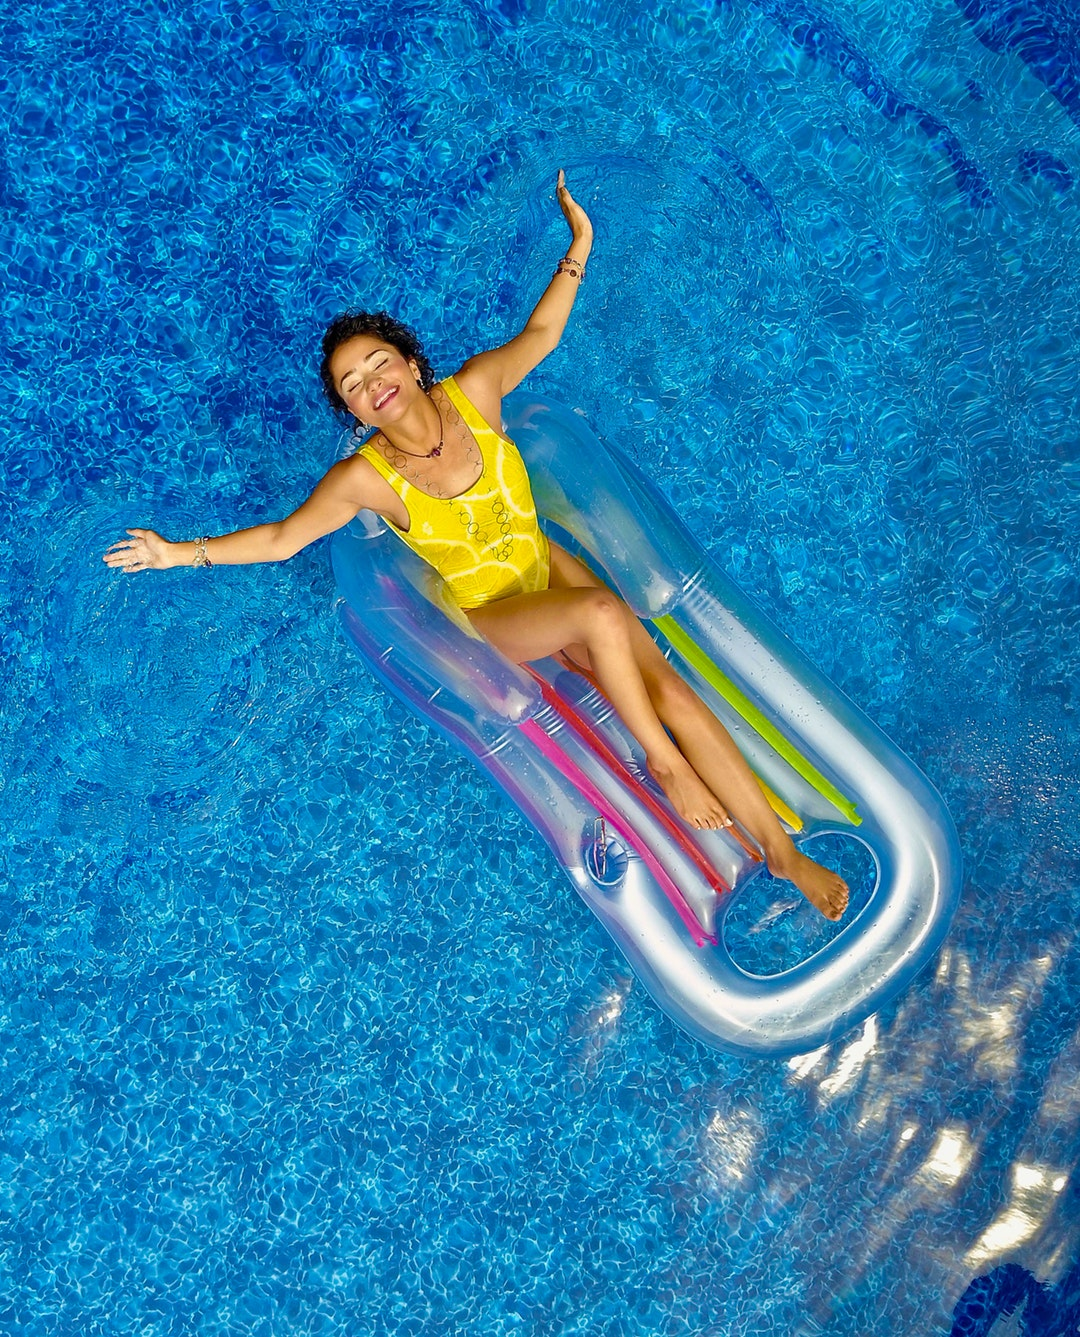 4 Things You Didn't Think About When Deciding Your Inground Pool Depth